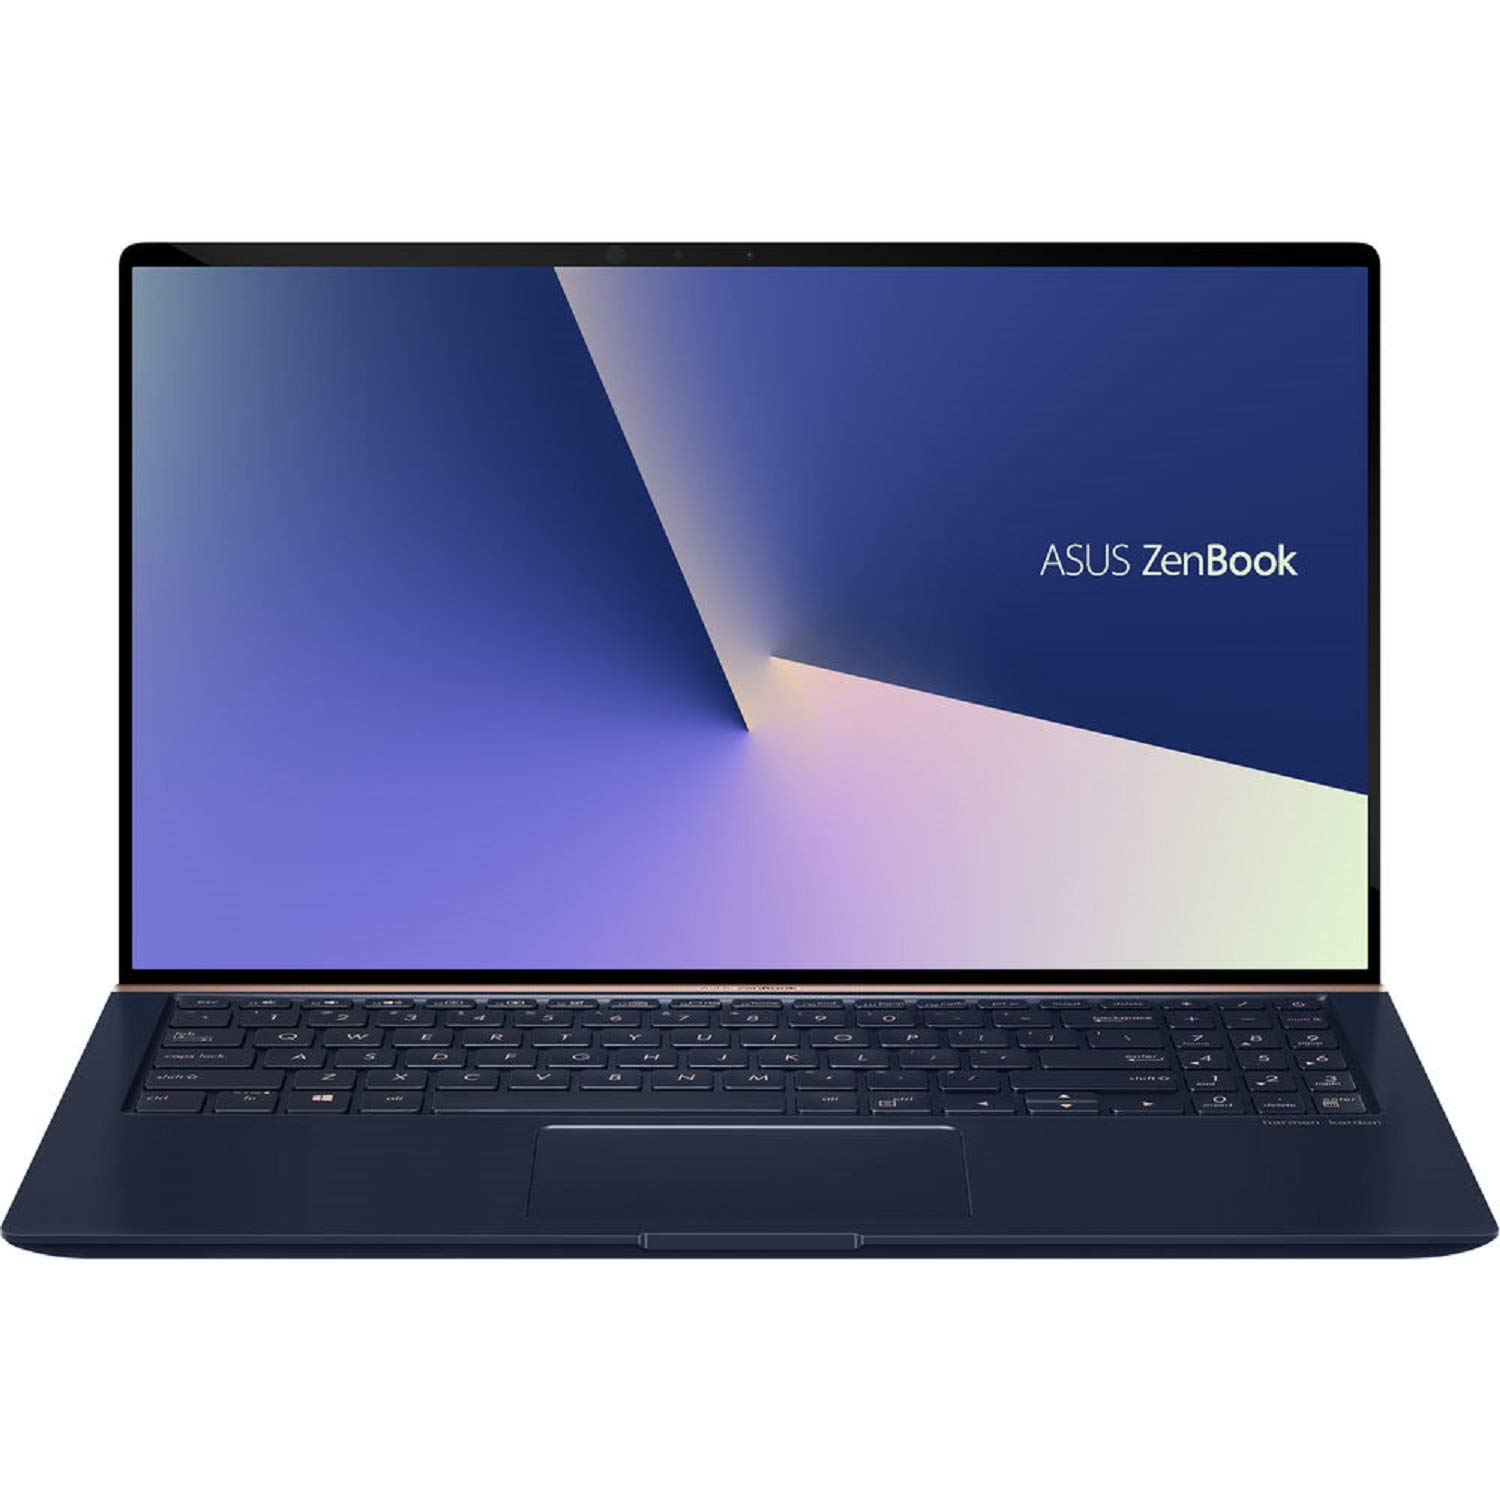 新発売の ASUS ZenBook 1050, 15 15 UX533FD-DH74 Premium Light and and Thin Home and Business Laptop (Intel 8th Gen i7-8565U, 16GB RAM, 1TB PCIe SSD, 15.6